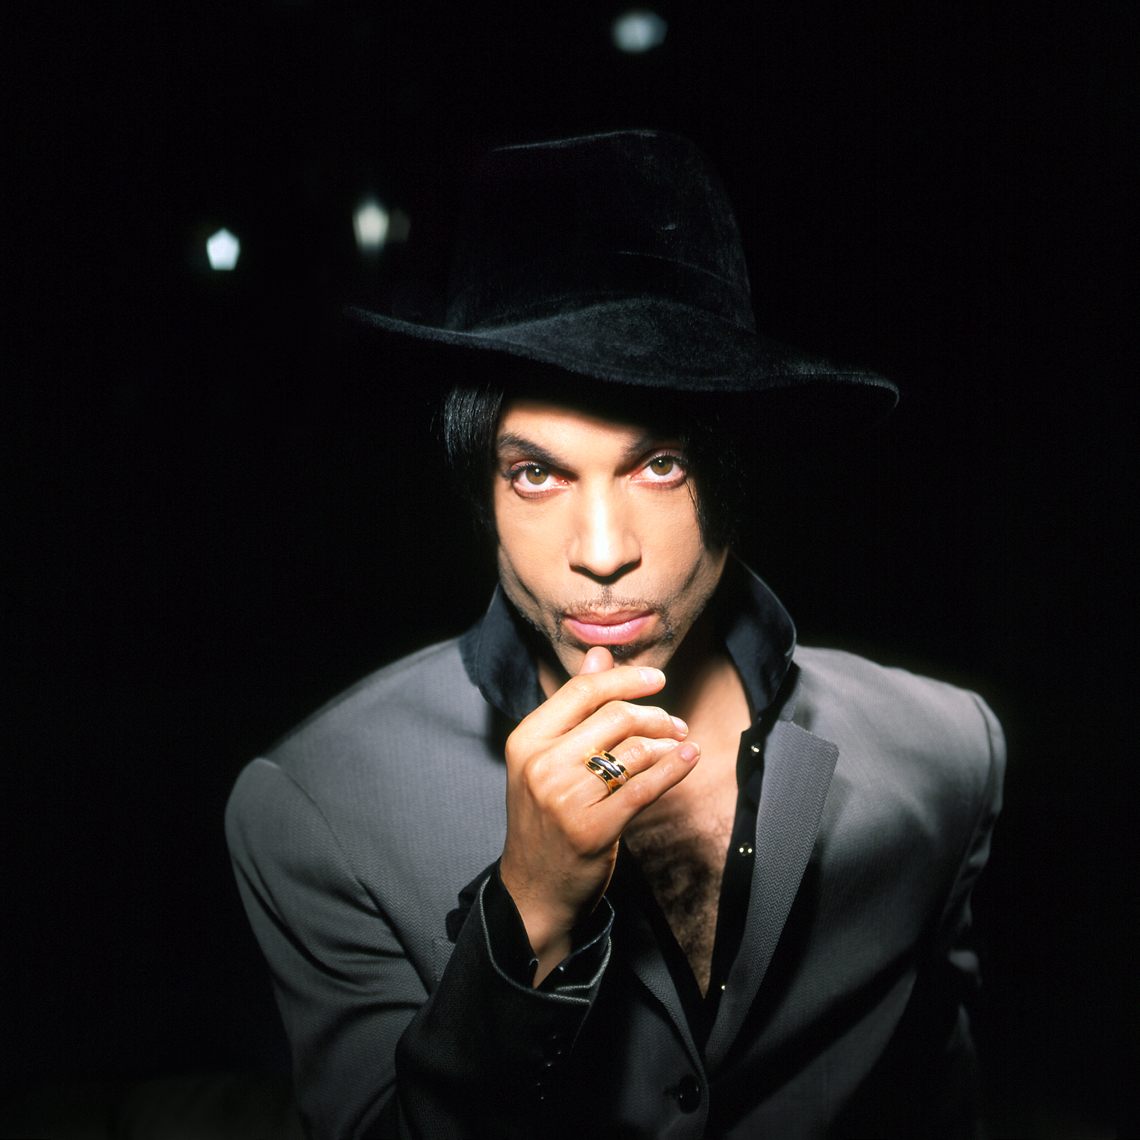 Prince Rogers Nelson album cover one night alone